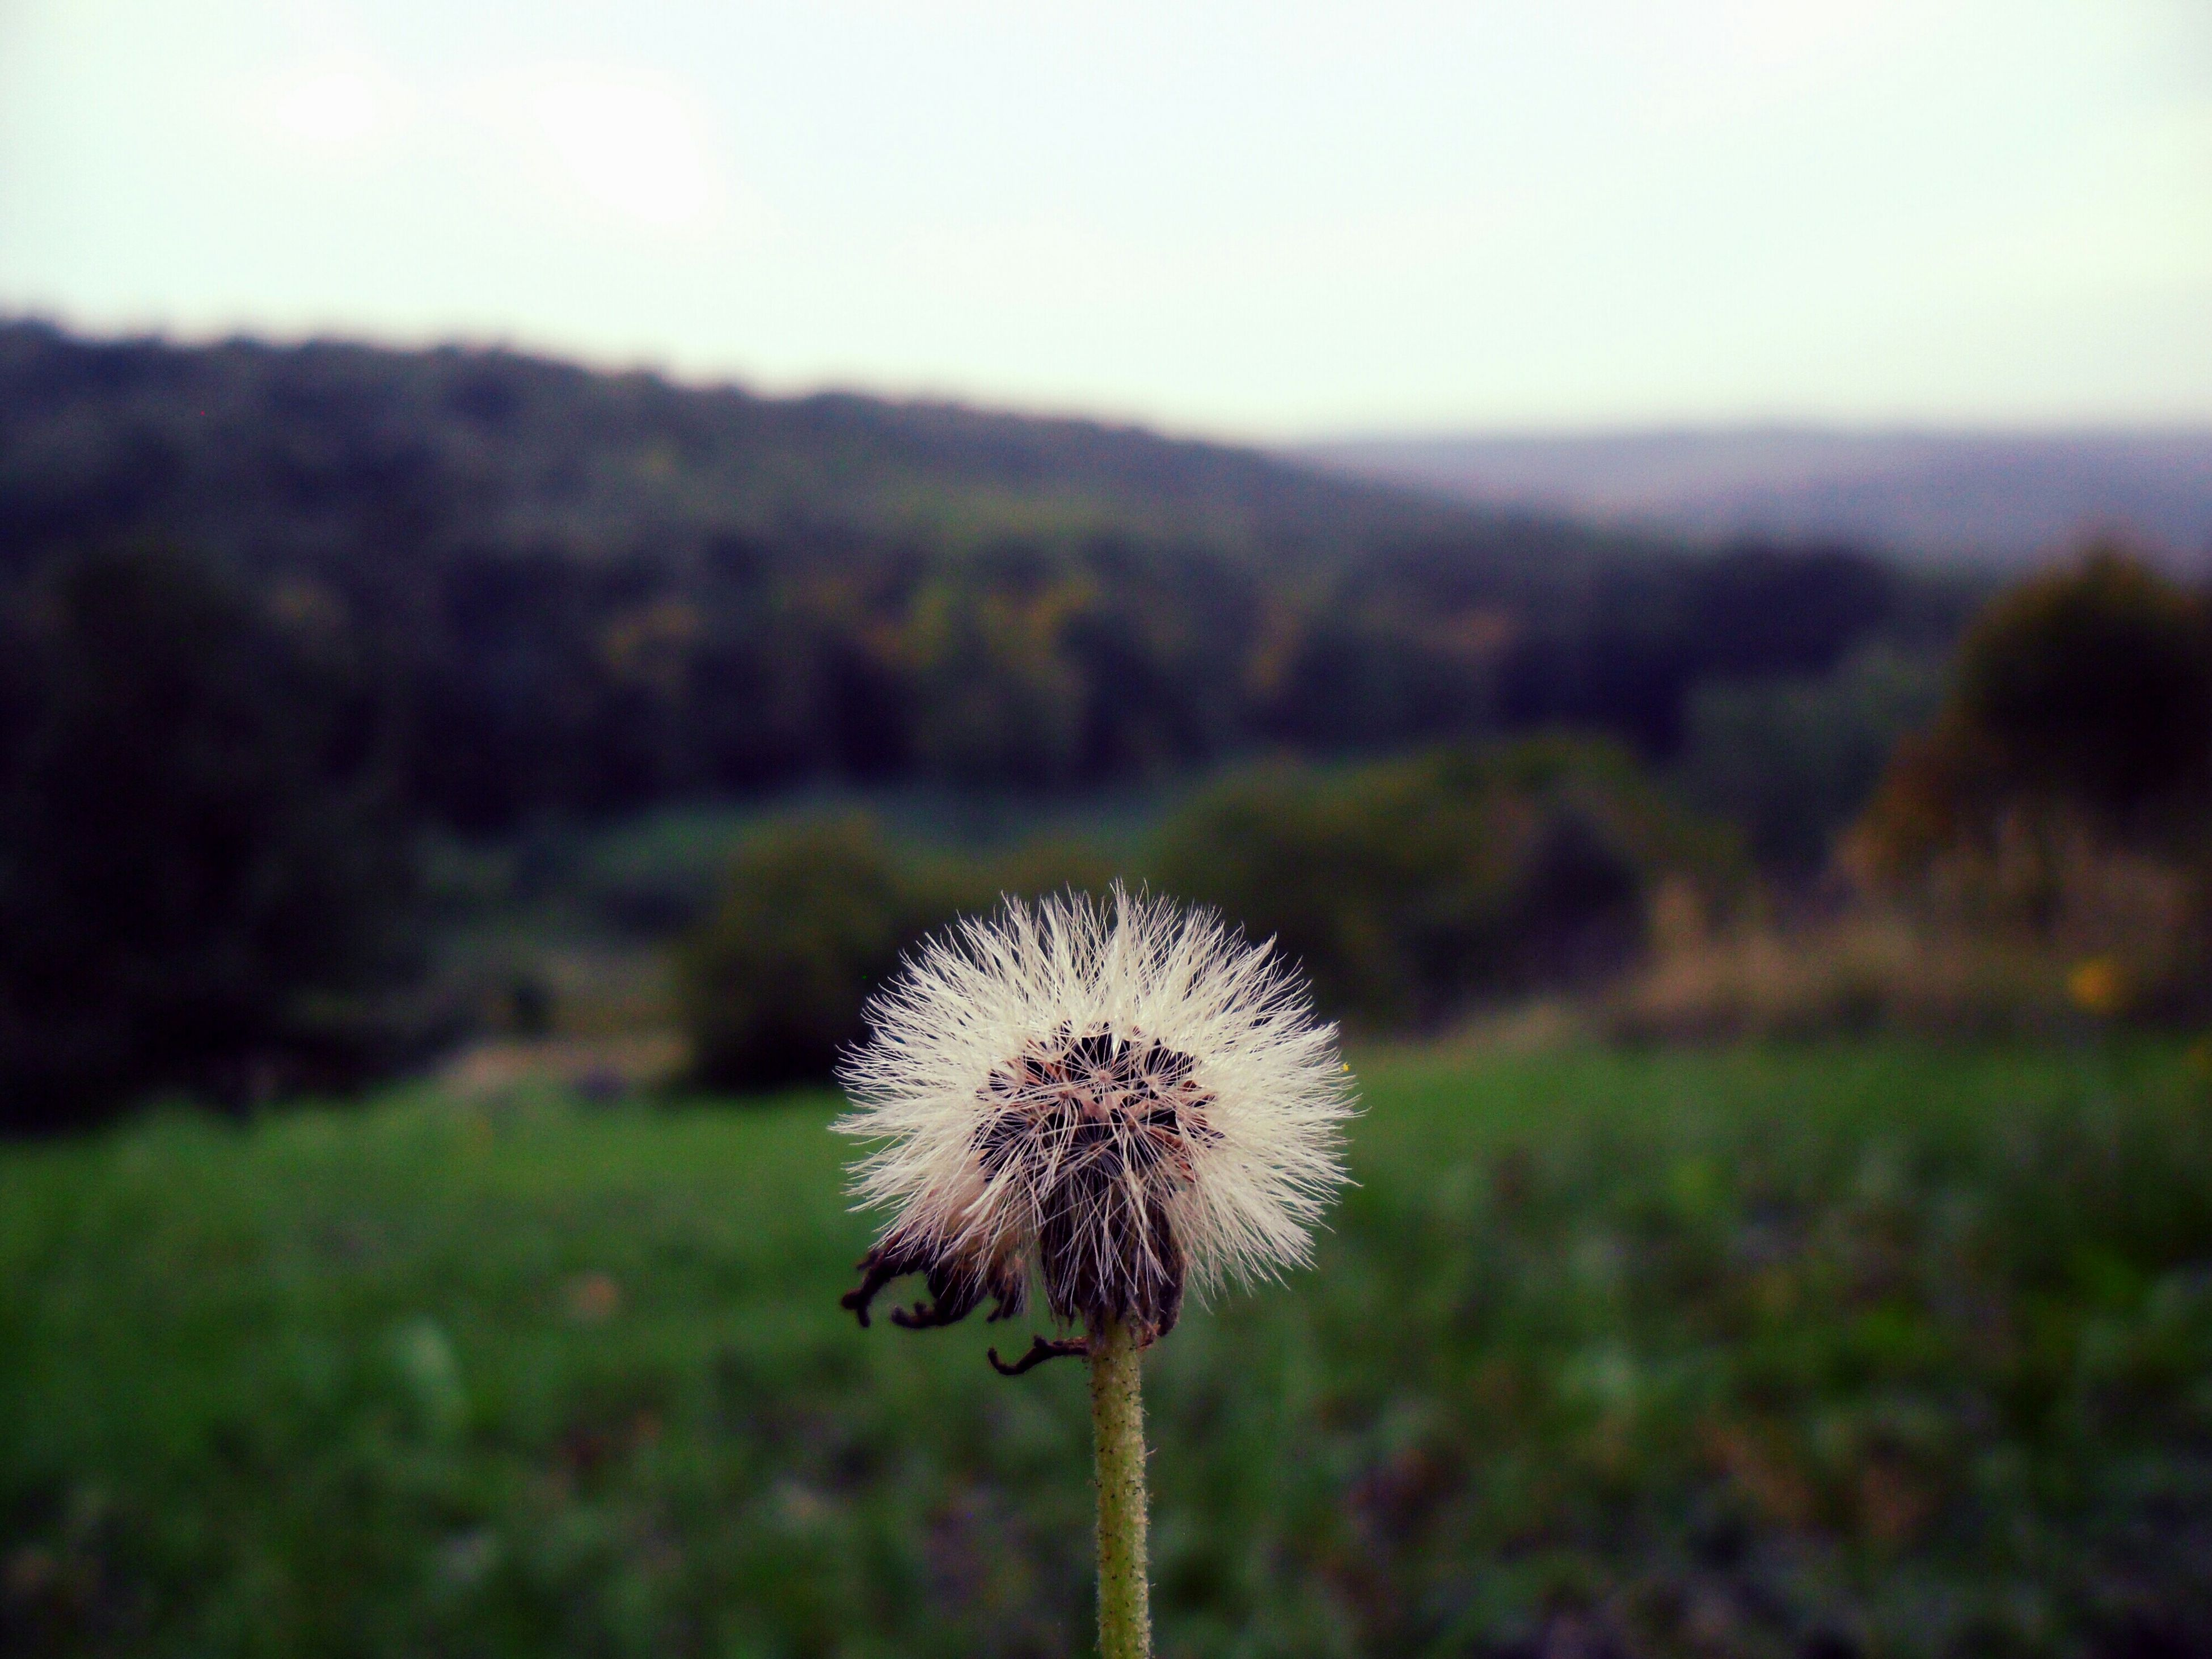 dandelion, flower, focus on foreground, fragility, stem, growth, field, freshness, close-up, nature, beauty in nature, uncultivated, flower head, wildflower, plant, sky, softness, landscape, tranquility, outdoors